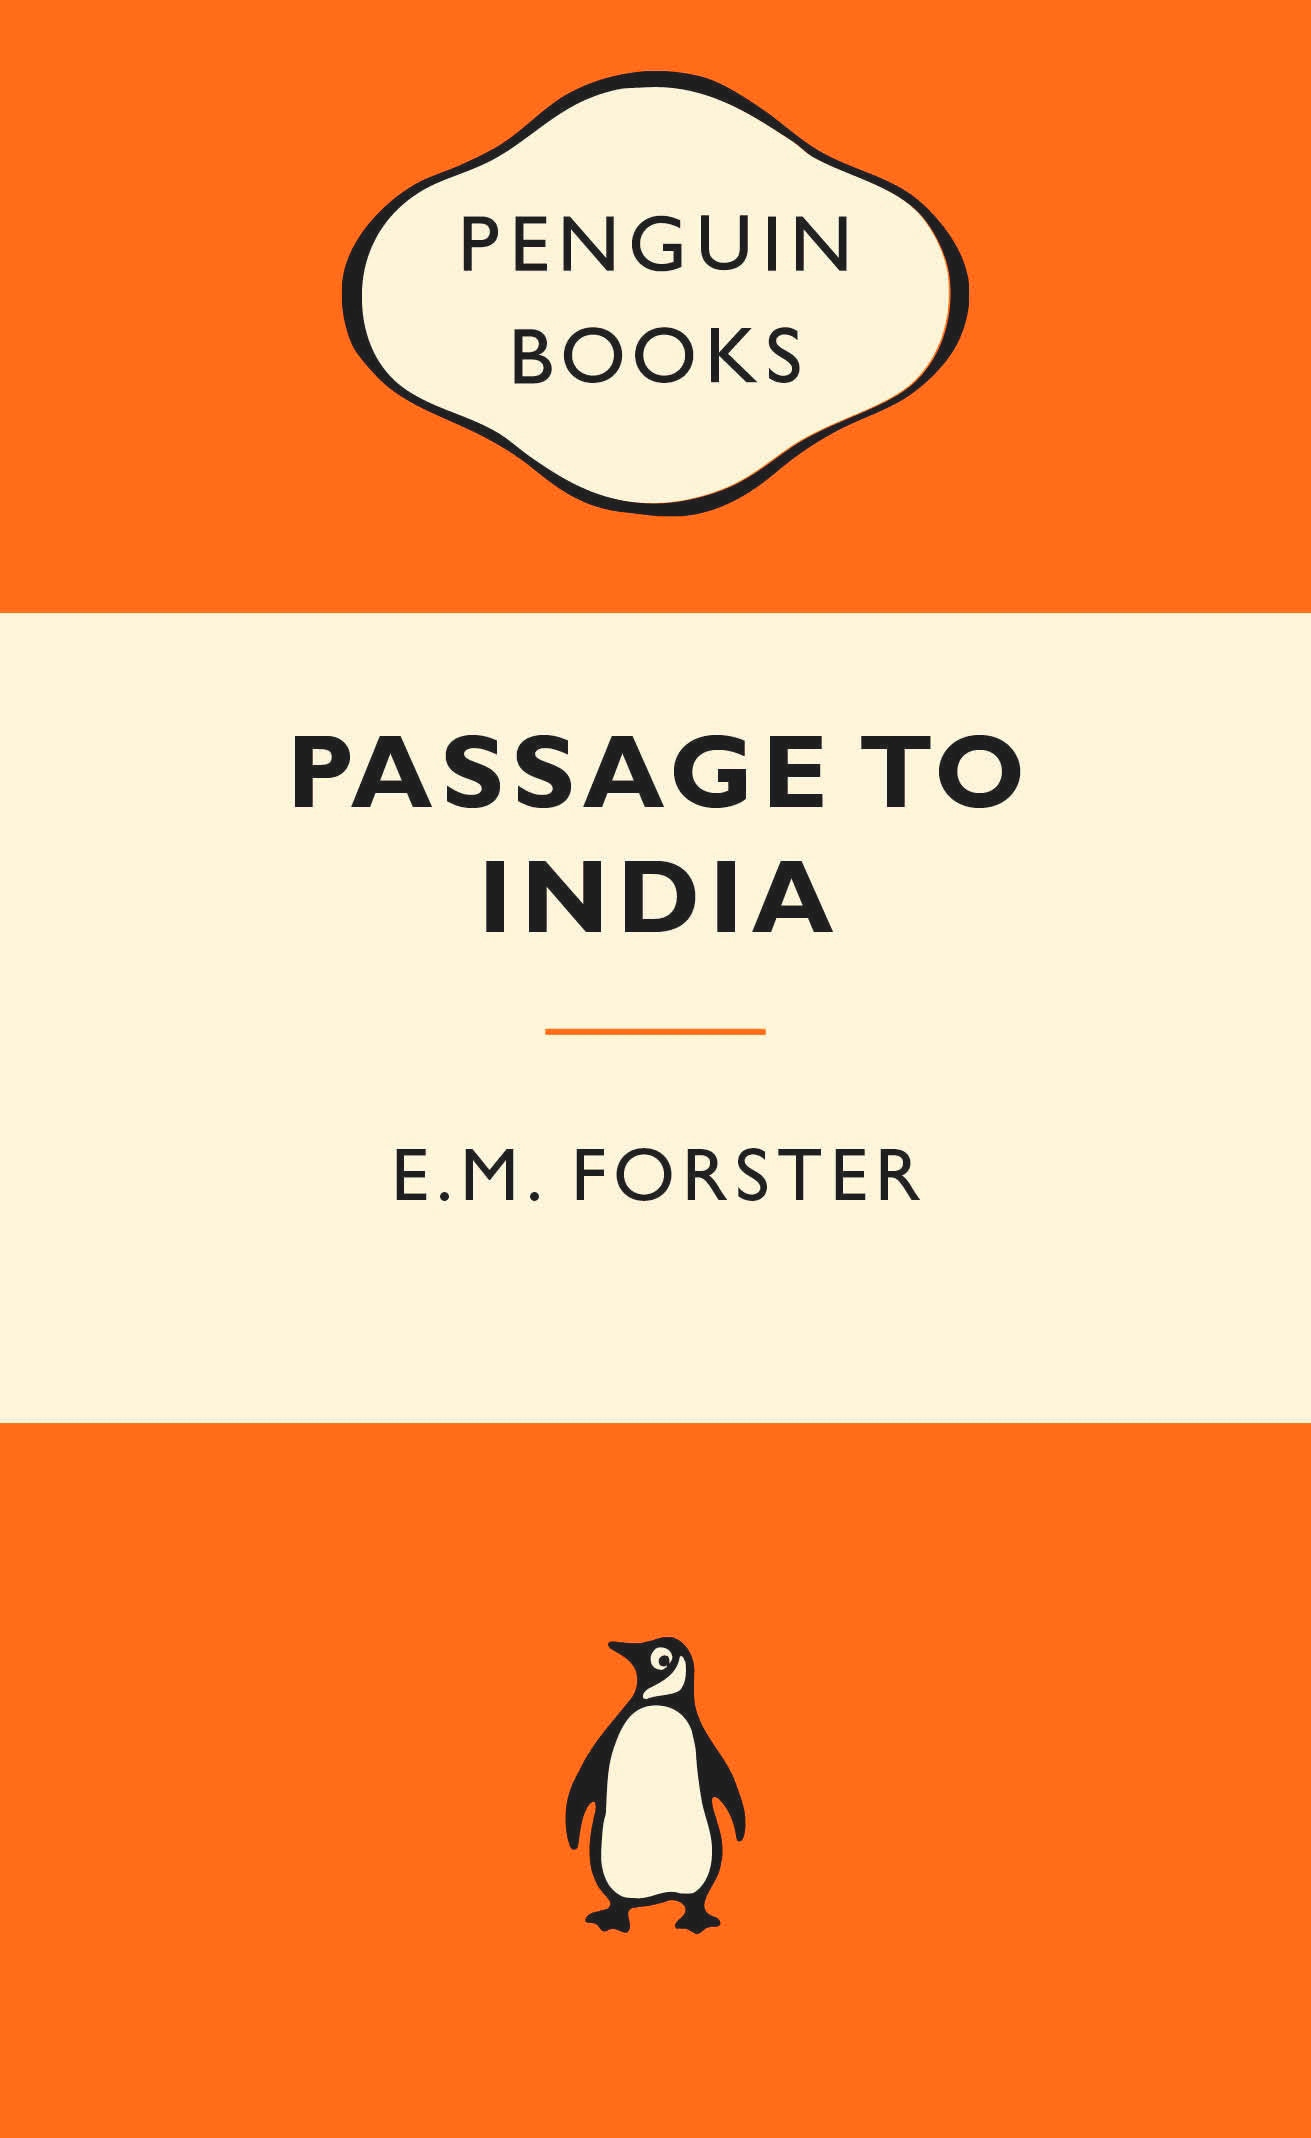 a passage to india by forster essay Free essay: em forster's a passage to india concerns the relations between the english and the native population of india during the colonial period in.